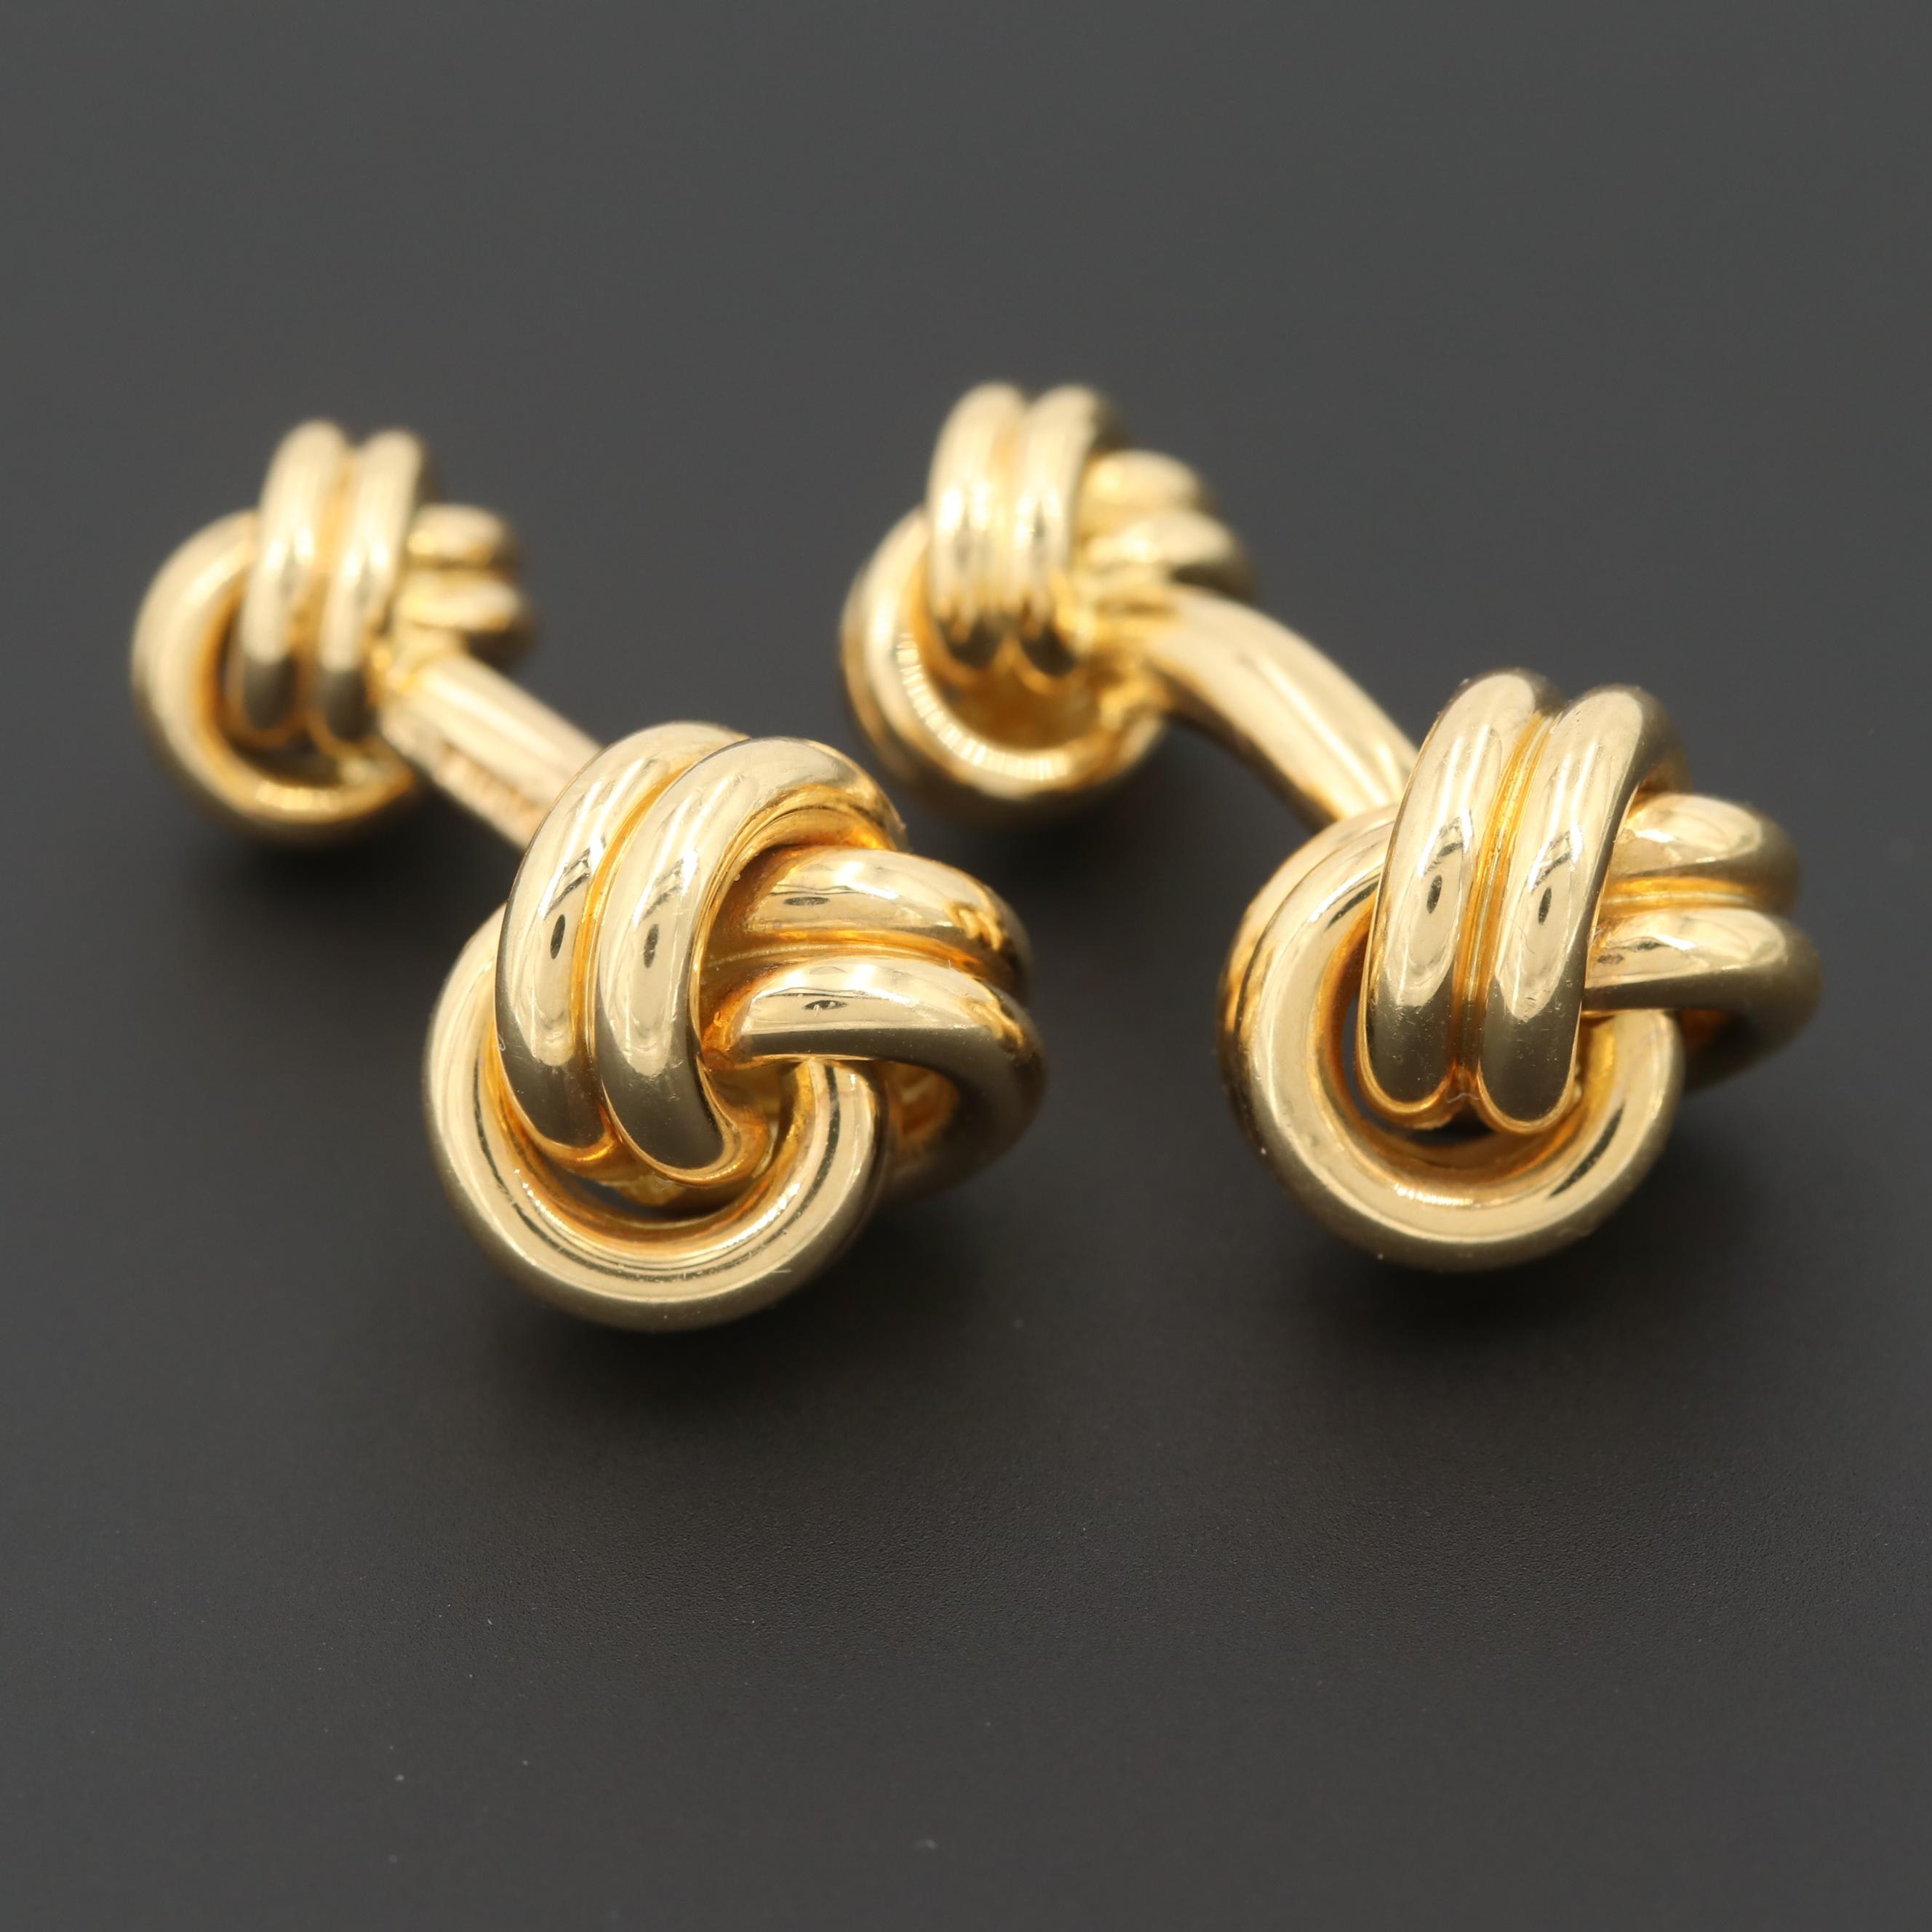 Lindsay & Co. 18K Yellow Gold Knot Cufflinks